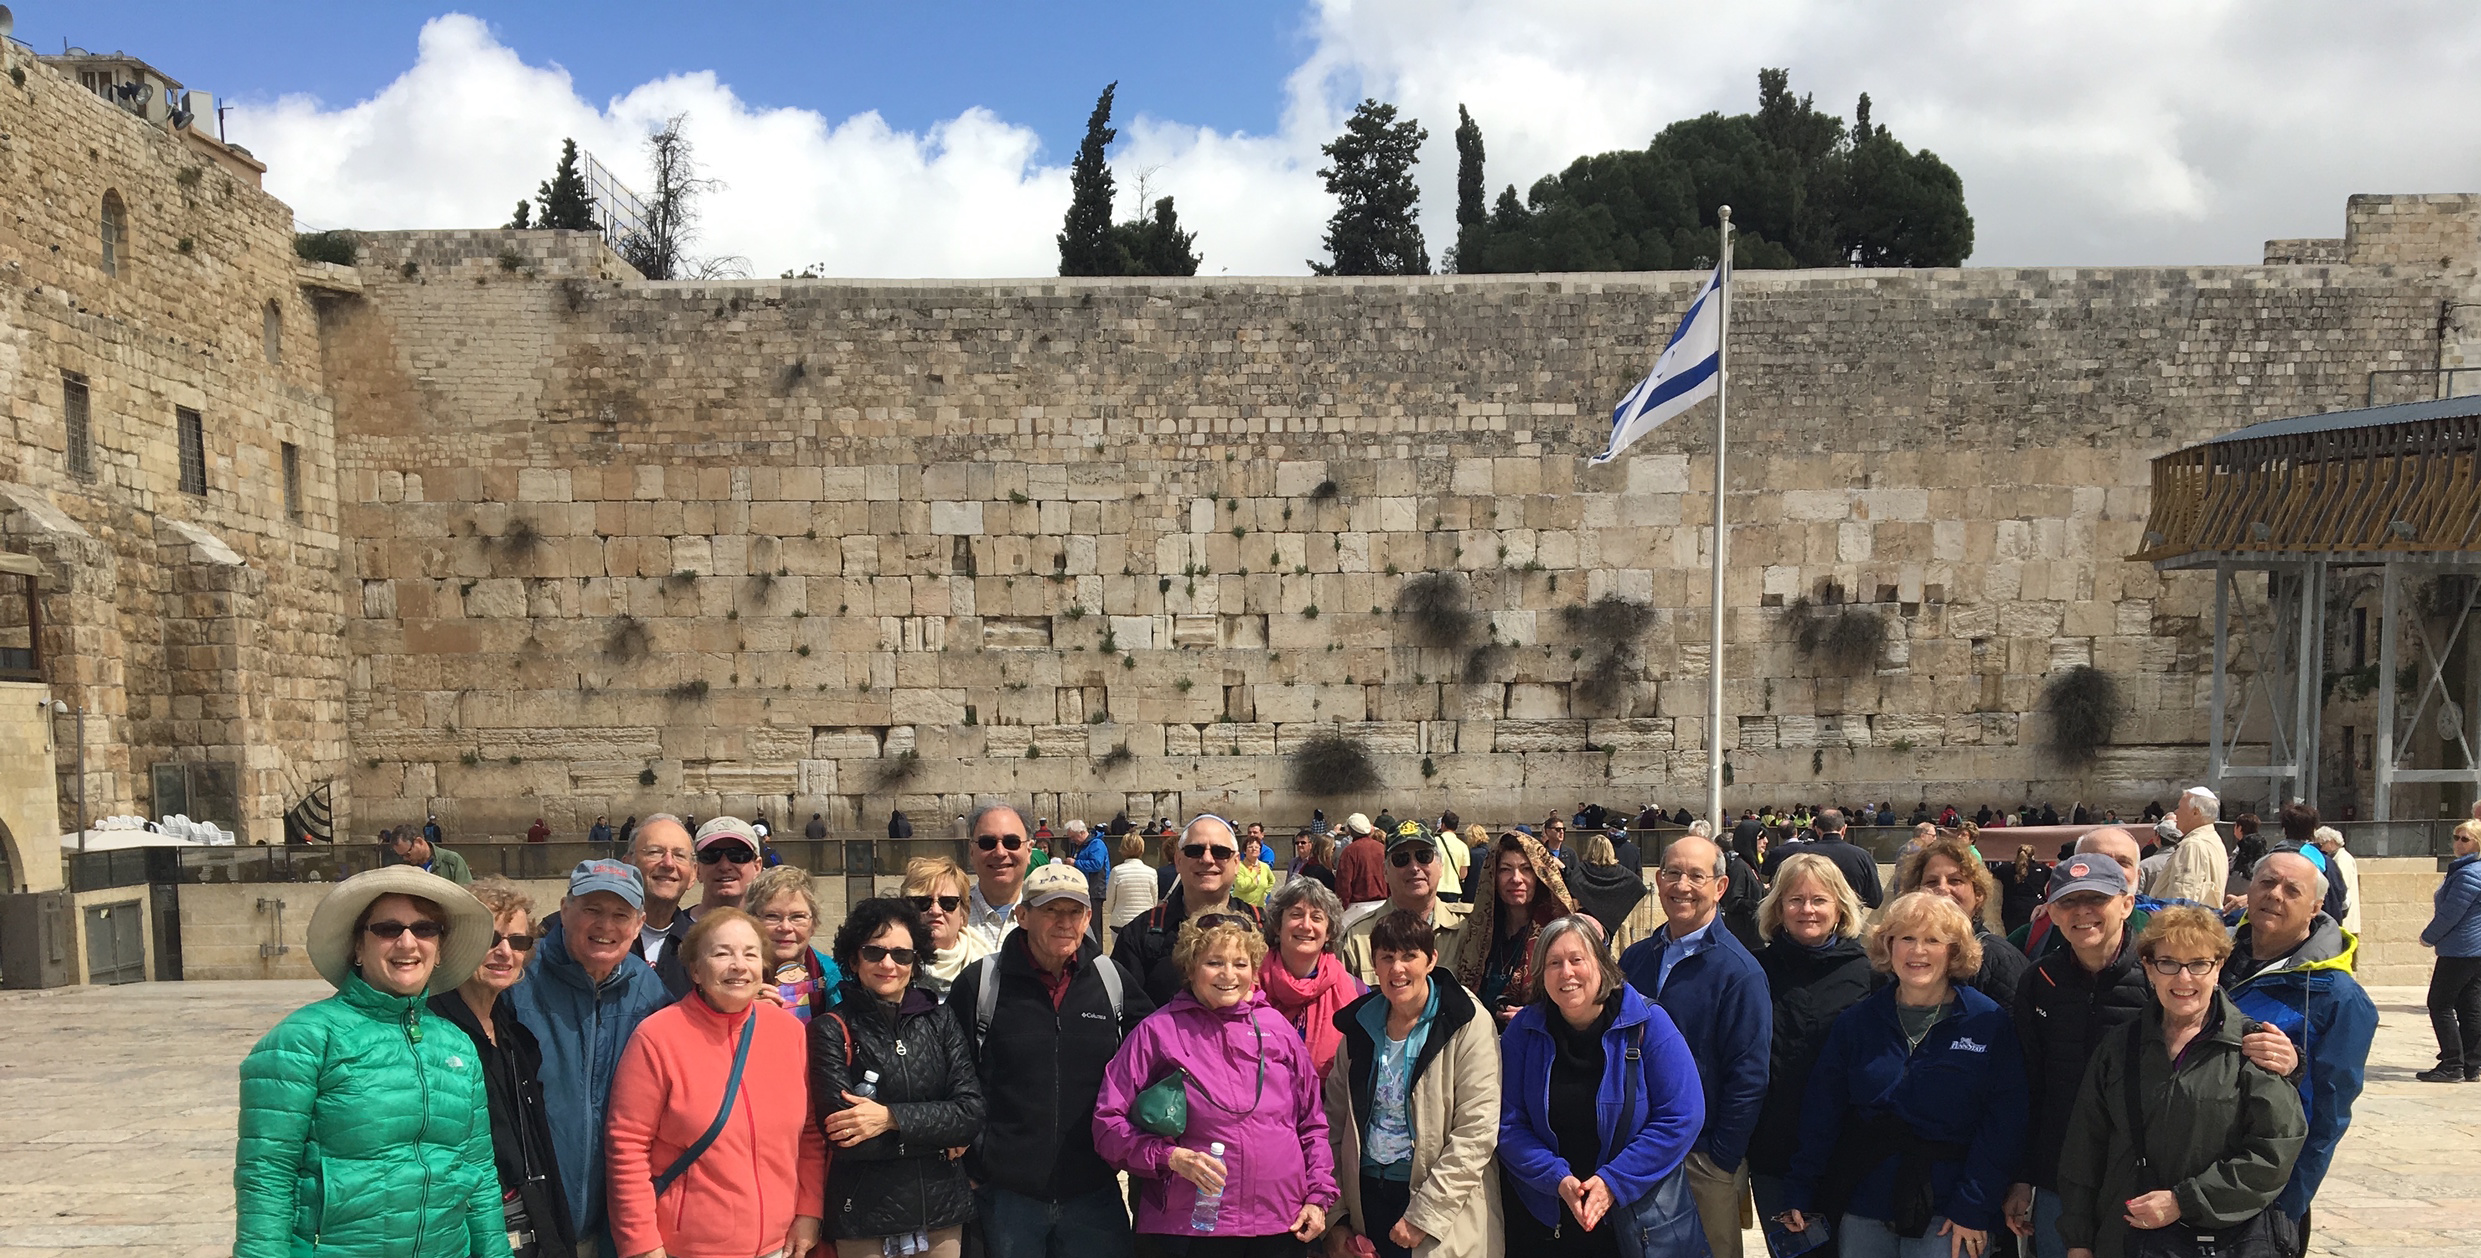 Beth Chaim travelers marking our first ever trip to Israel with a visit to the Western Wall